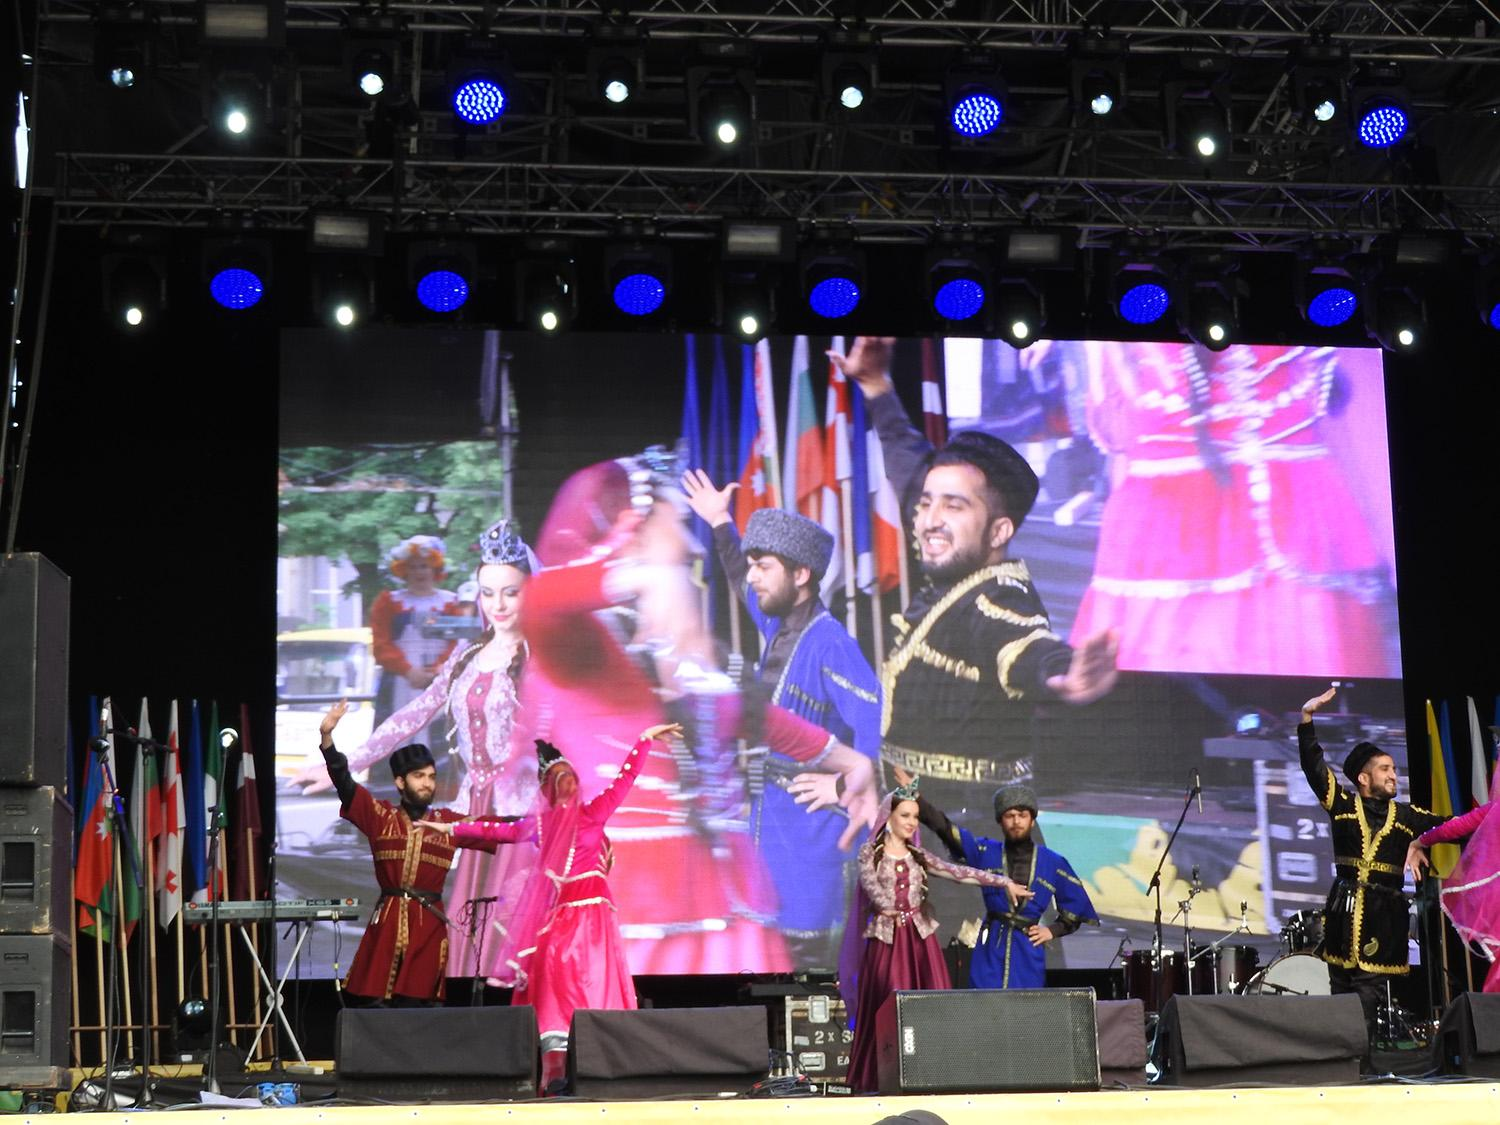 Azerbaijan's national cuisine, music and culture demonstrated in Ukraine